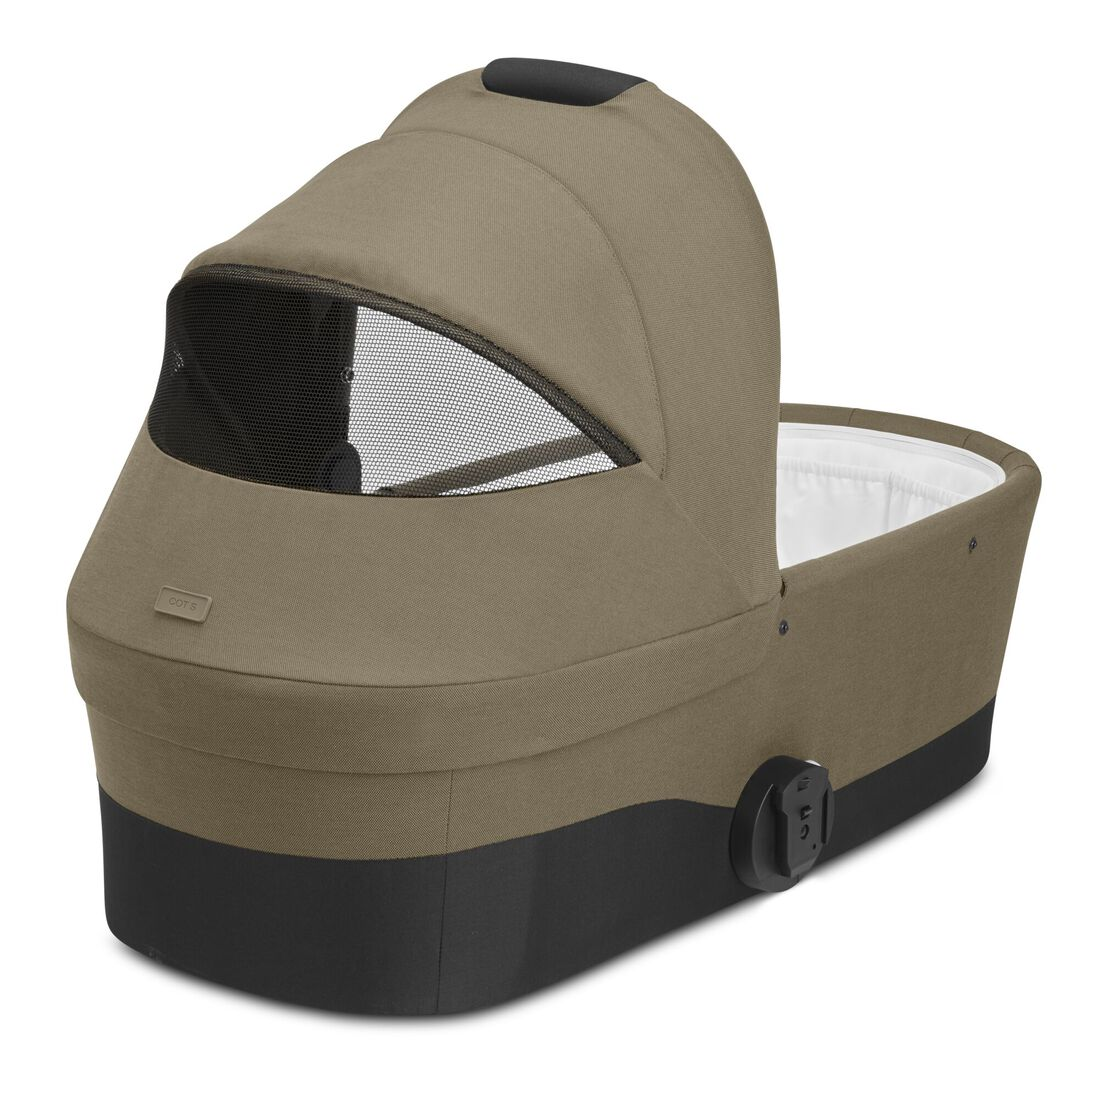 CYBEX Cot S - Classic Beige in Classic Beige large image number 3